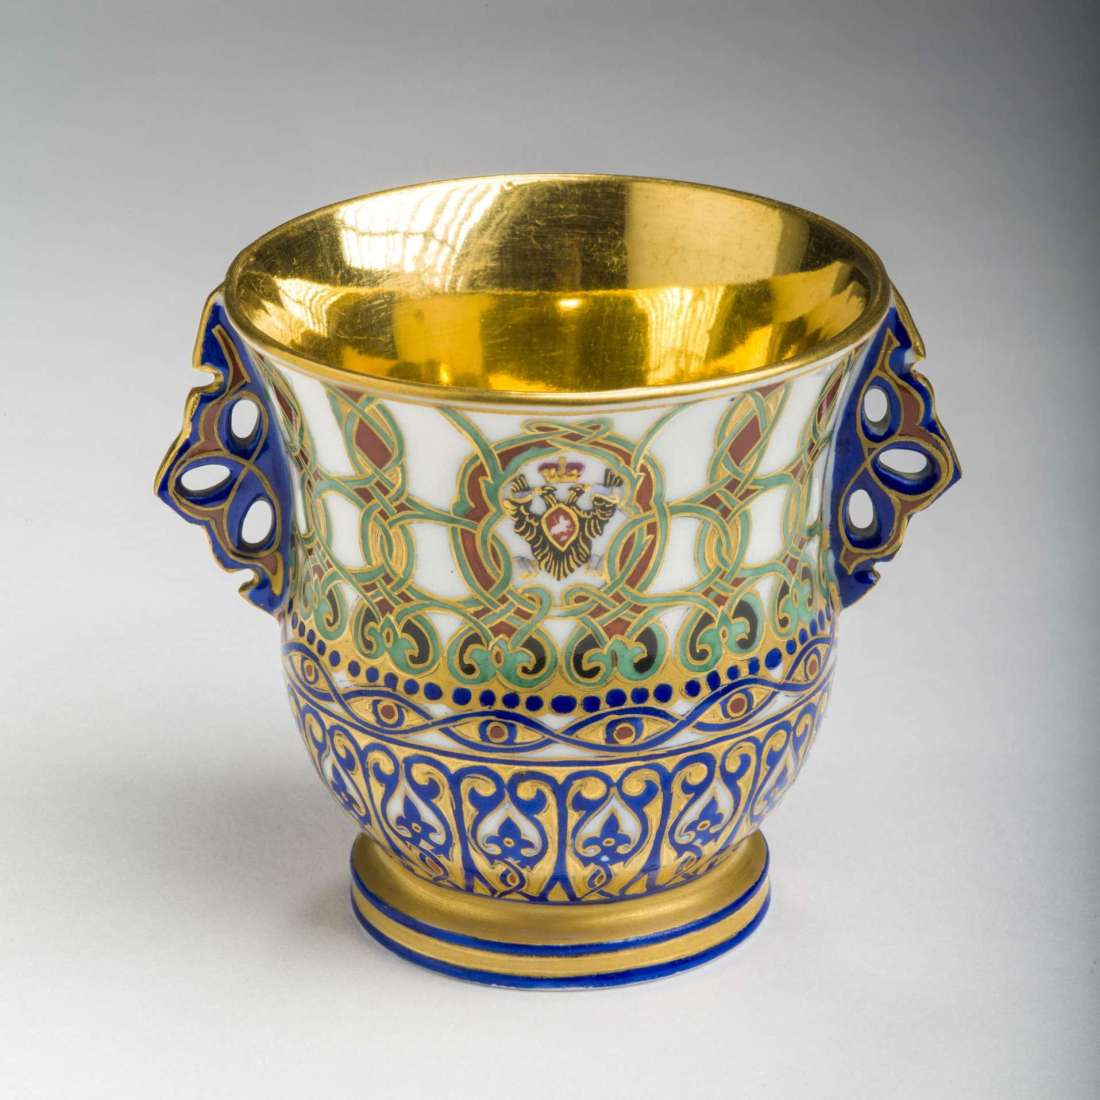 Ice cup from the service of Grand Duke Konstantin Nikolaevich